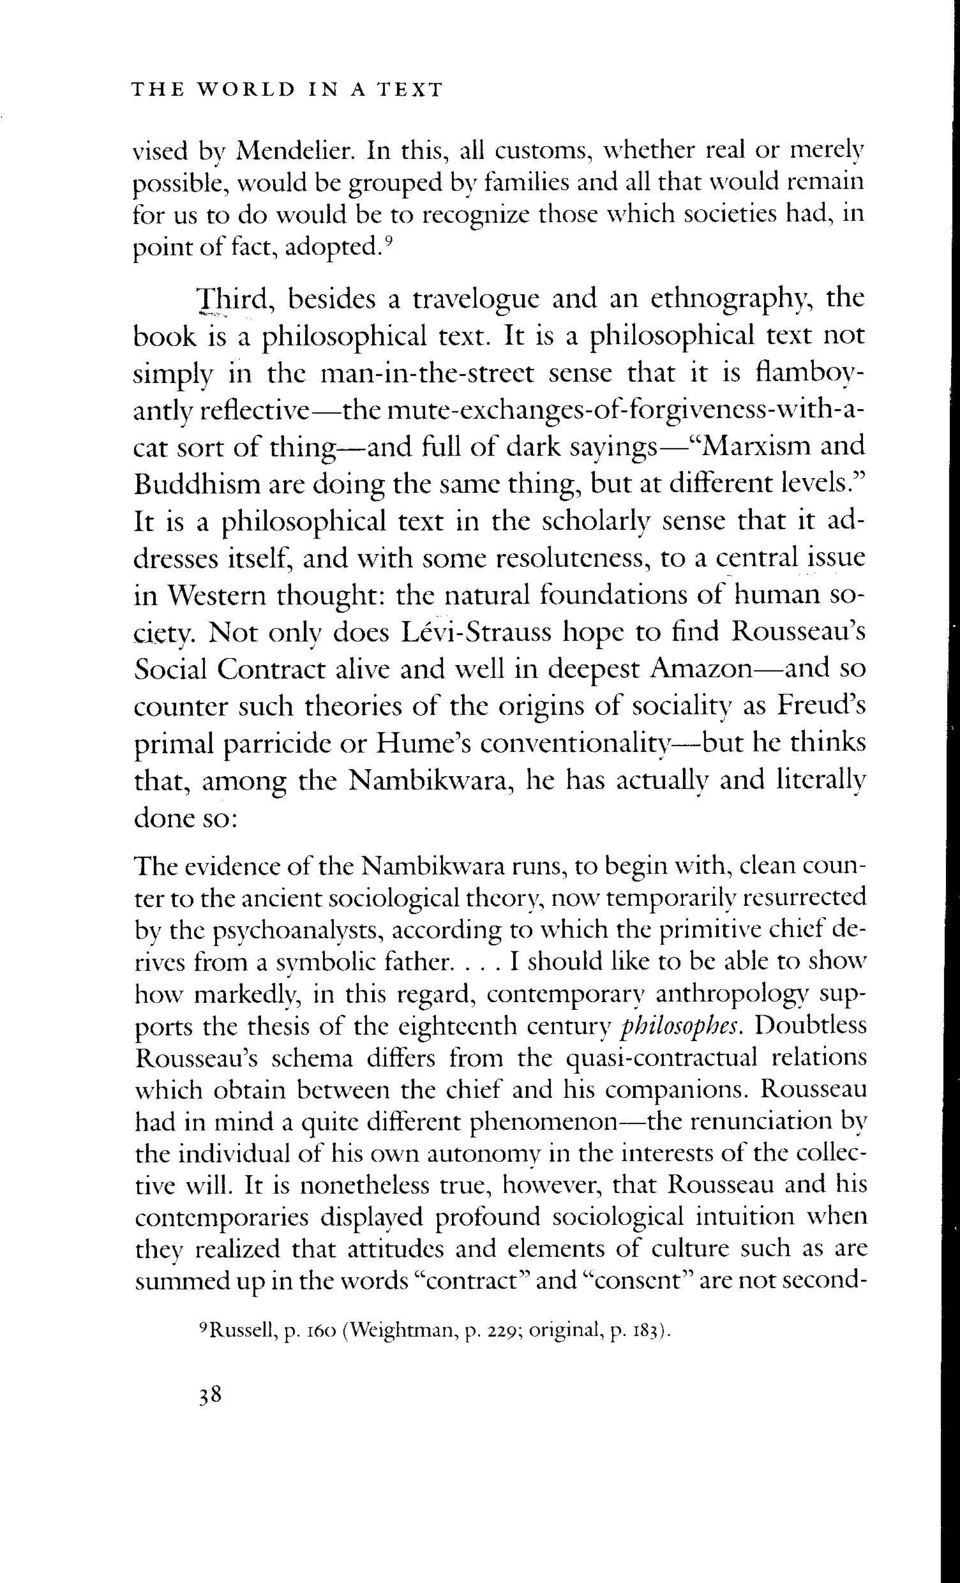 n Jhird, besides a travelogue and an ethnographr', the book is a philosophical text.